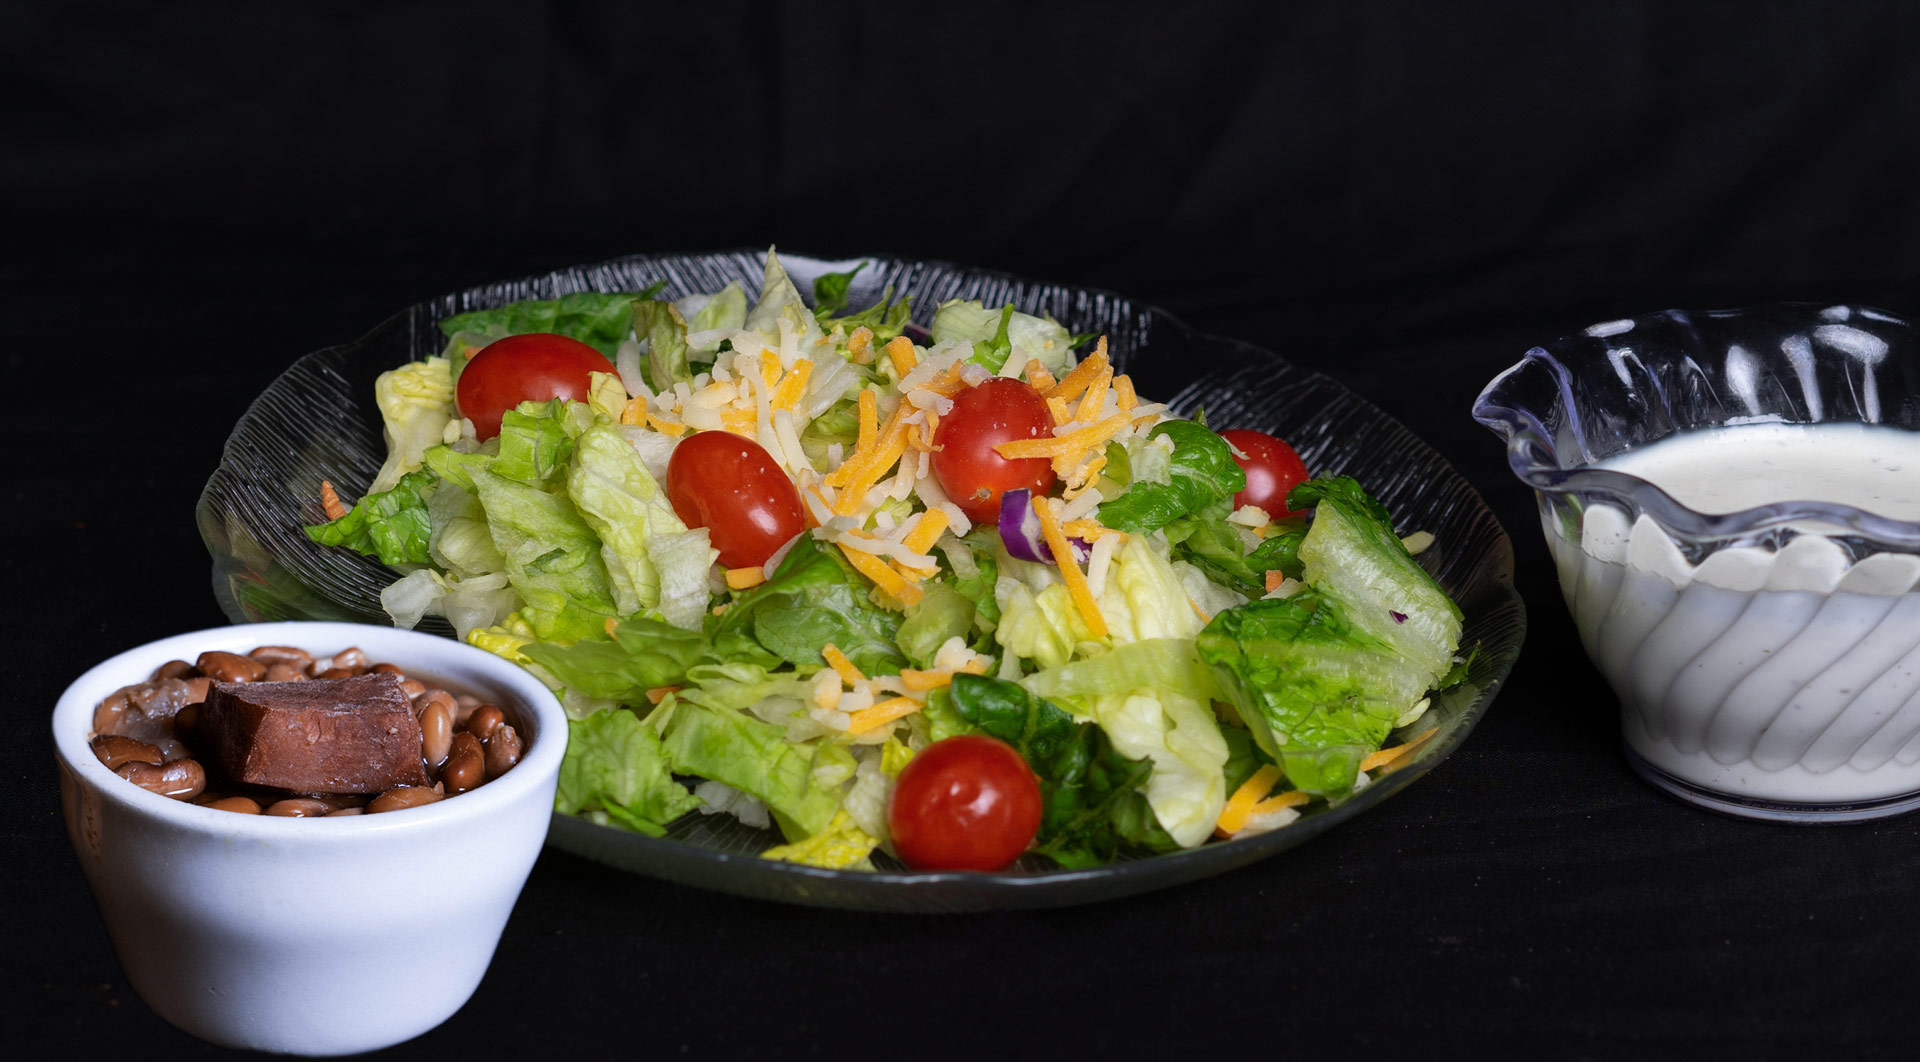 Build Your Own Bean and Salad Bar  Add to any entree for only 3.00 at lunch and 4.00 for dinner One trip salad bar only (does not include bean bar) 7.00 All You can eat bean and salad bar 10.00 Bean Bar with all you can eat hushpuppies, pickled green tomatoes, coleslaw, and onions 5.00